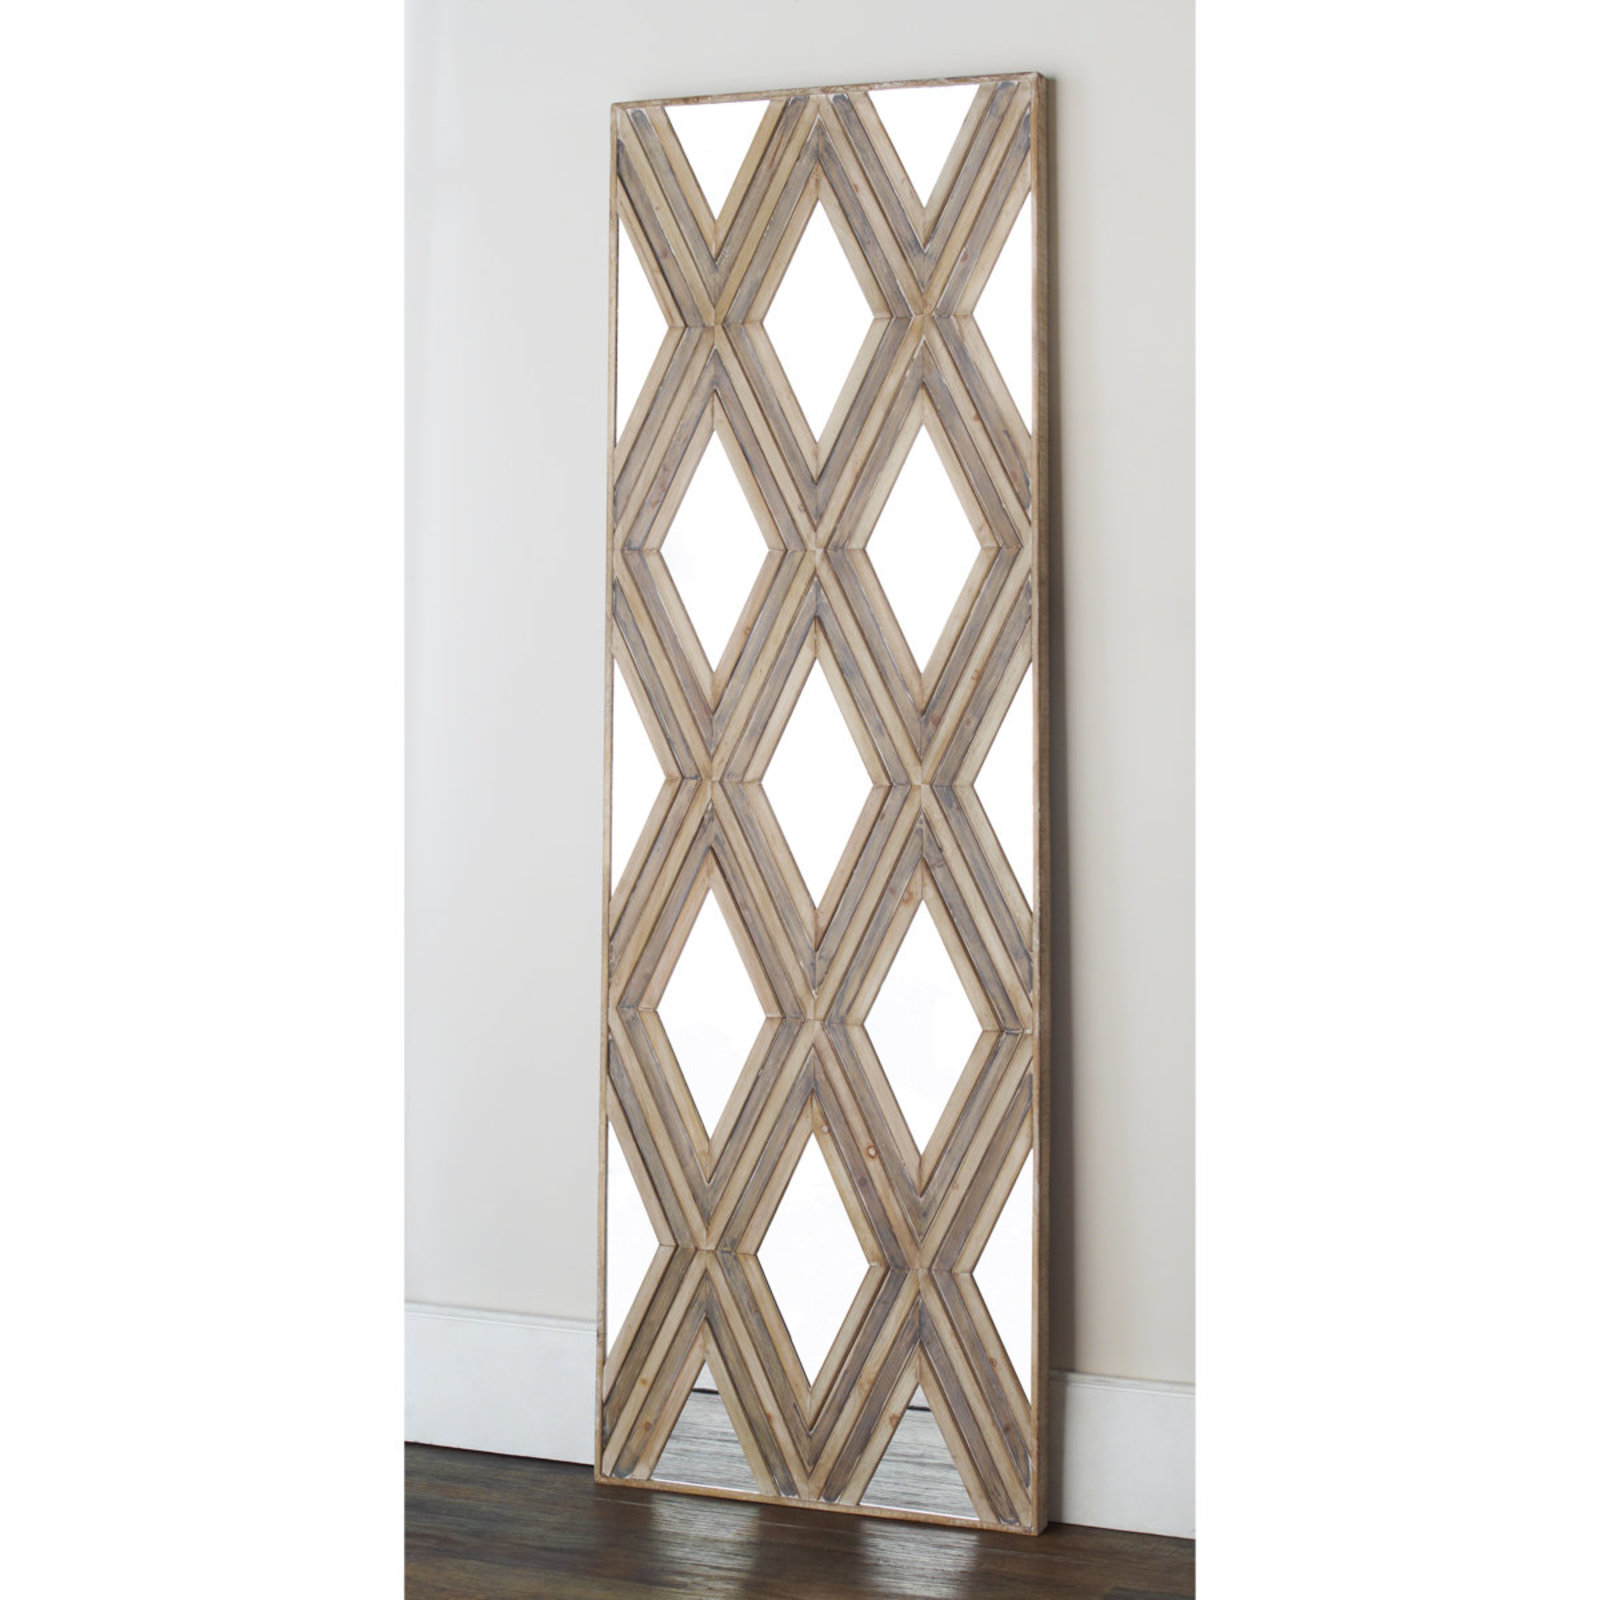 diamond argyle mirrored wall panel shades light accent table gray stained wood new home decoration west elm coffee white storage chest with drawers end decor ideas furniture